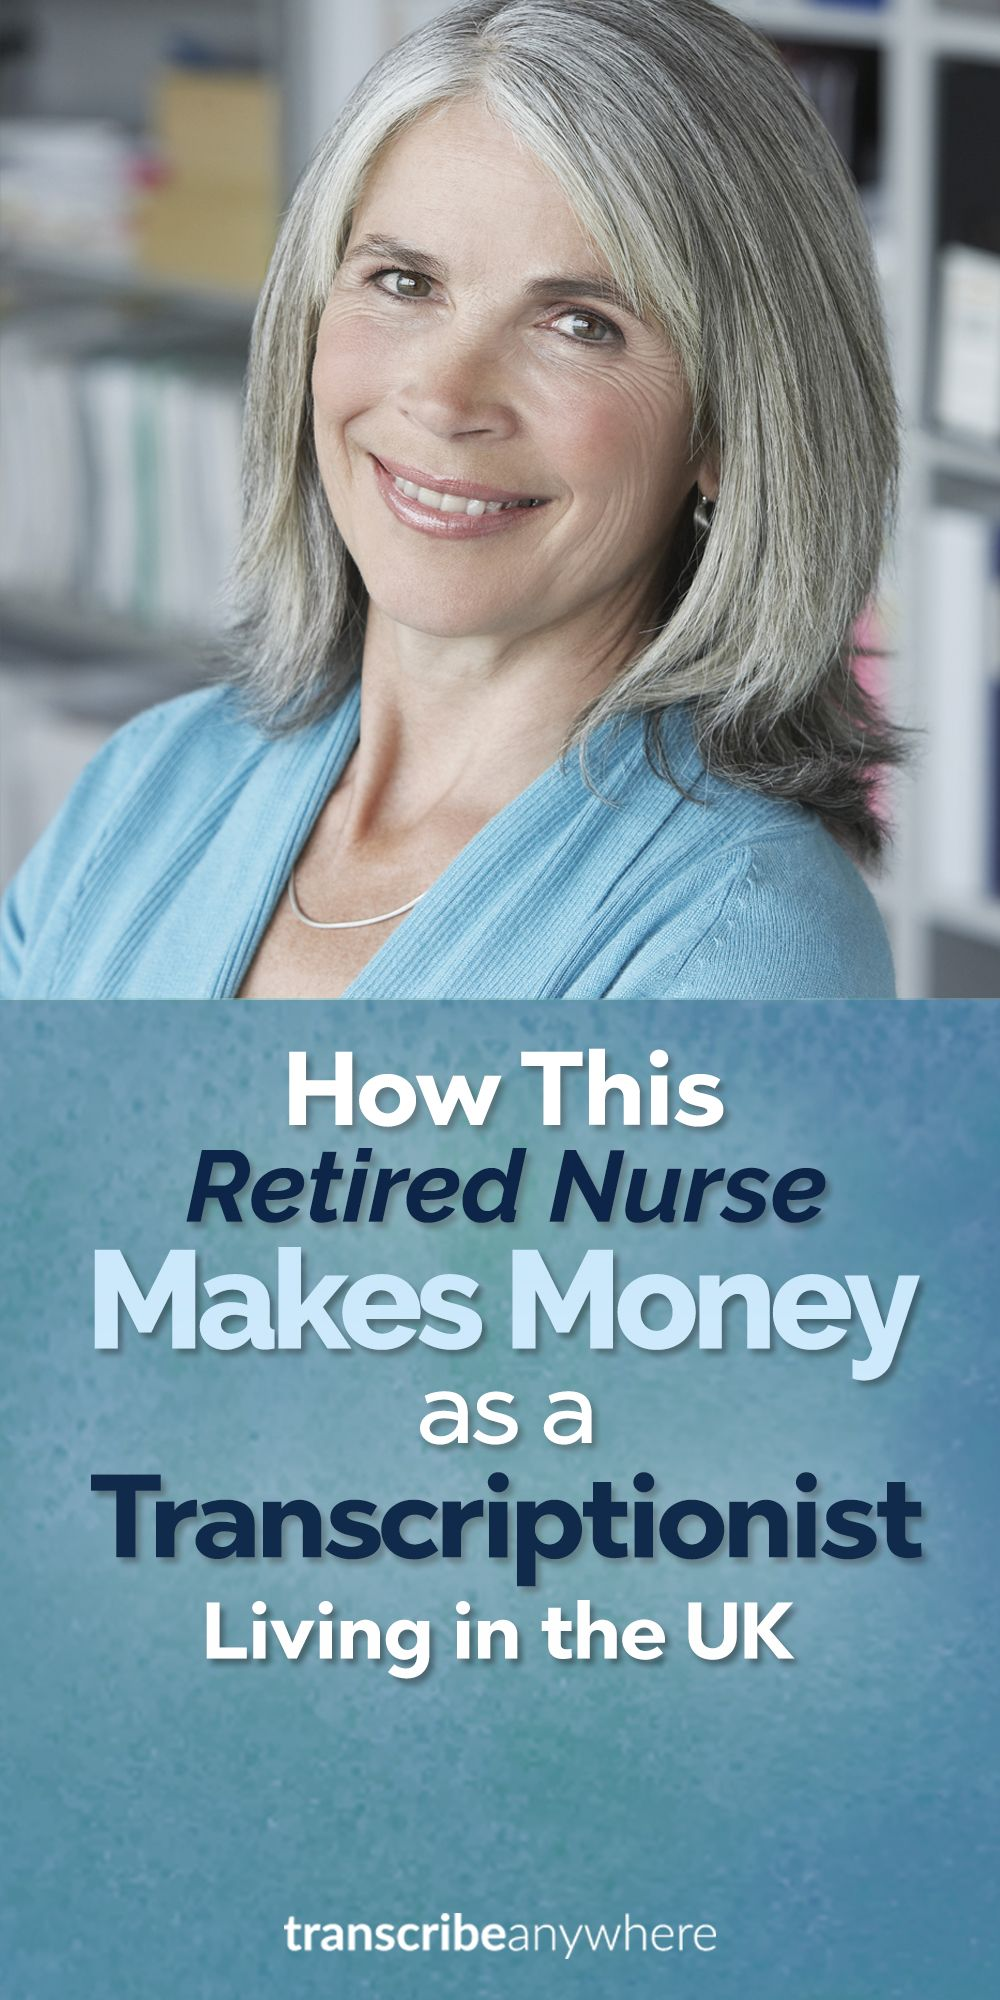 How This Retired Nurse Makes Money as a Transcriptionist